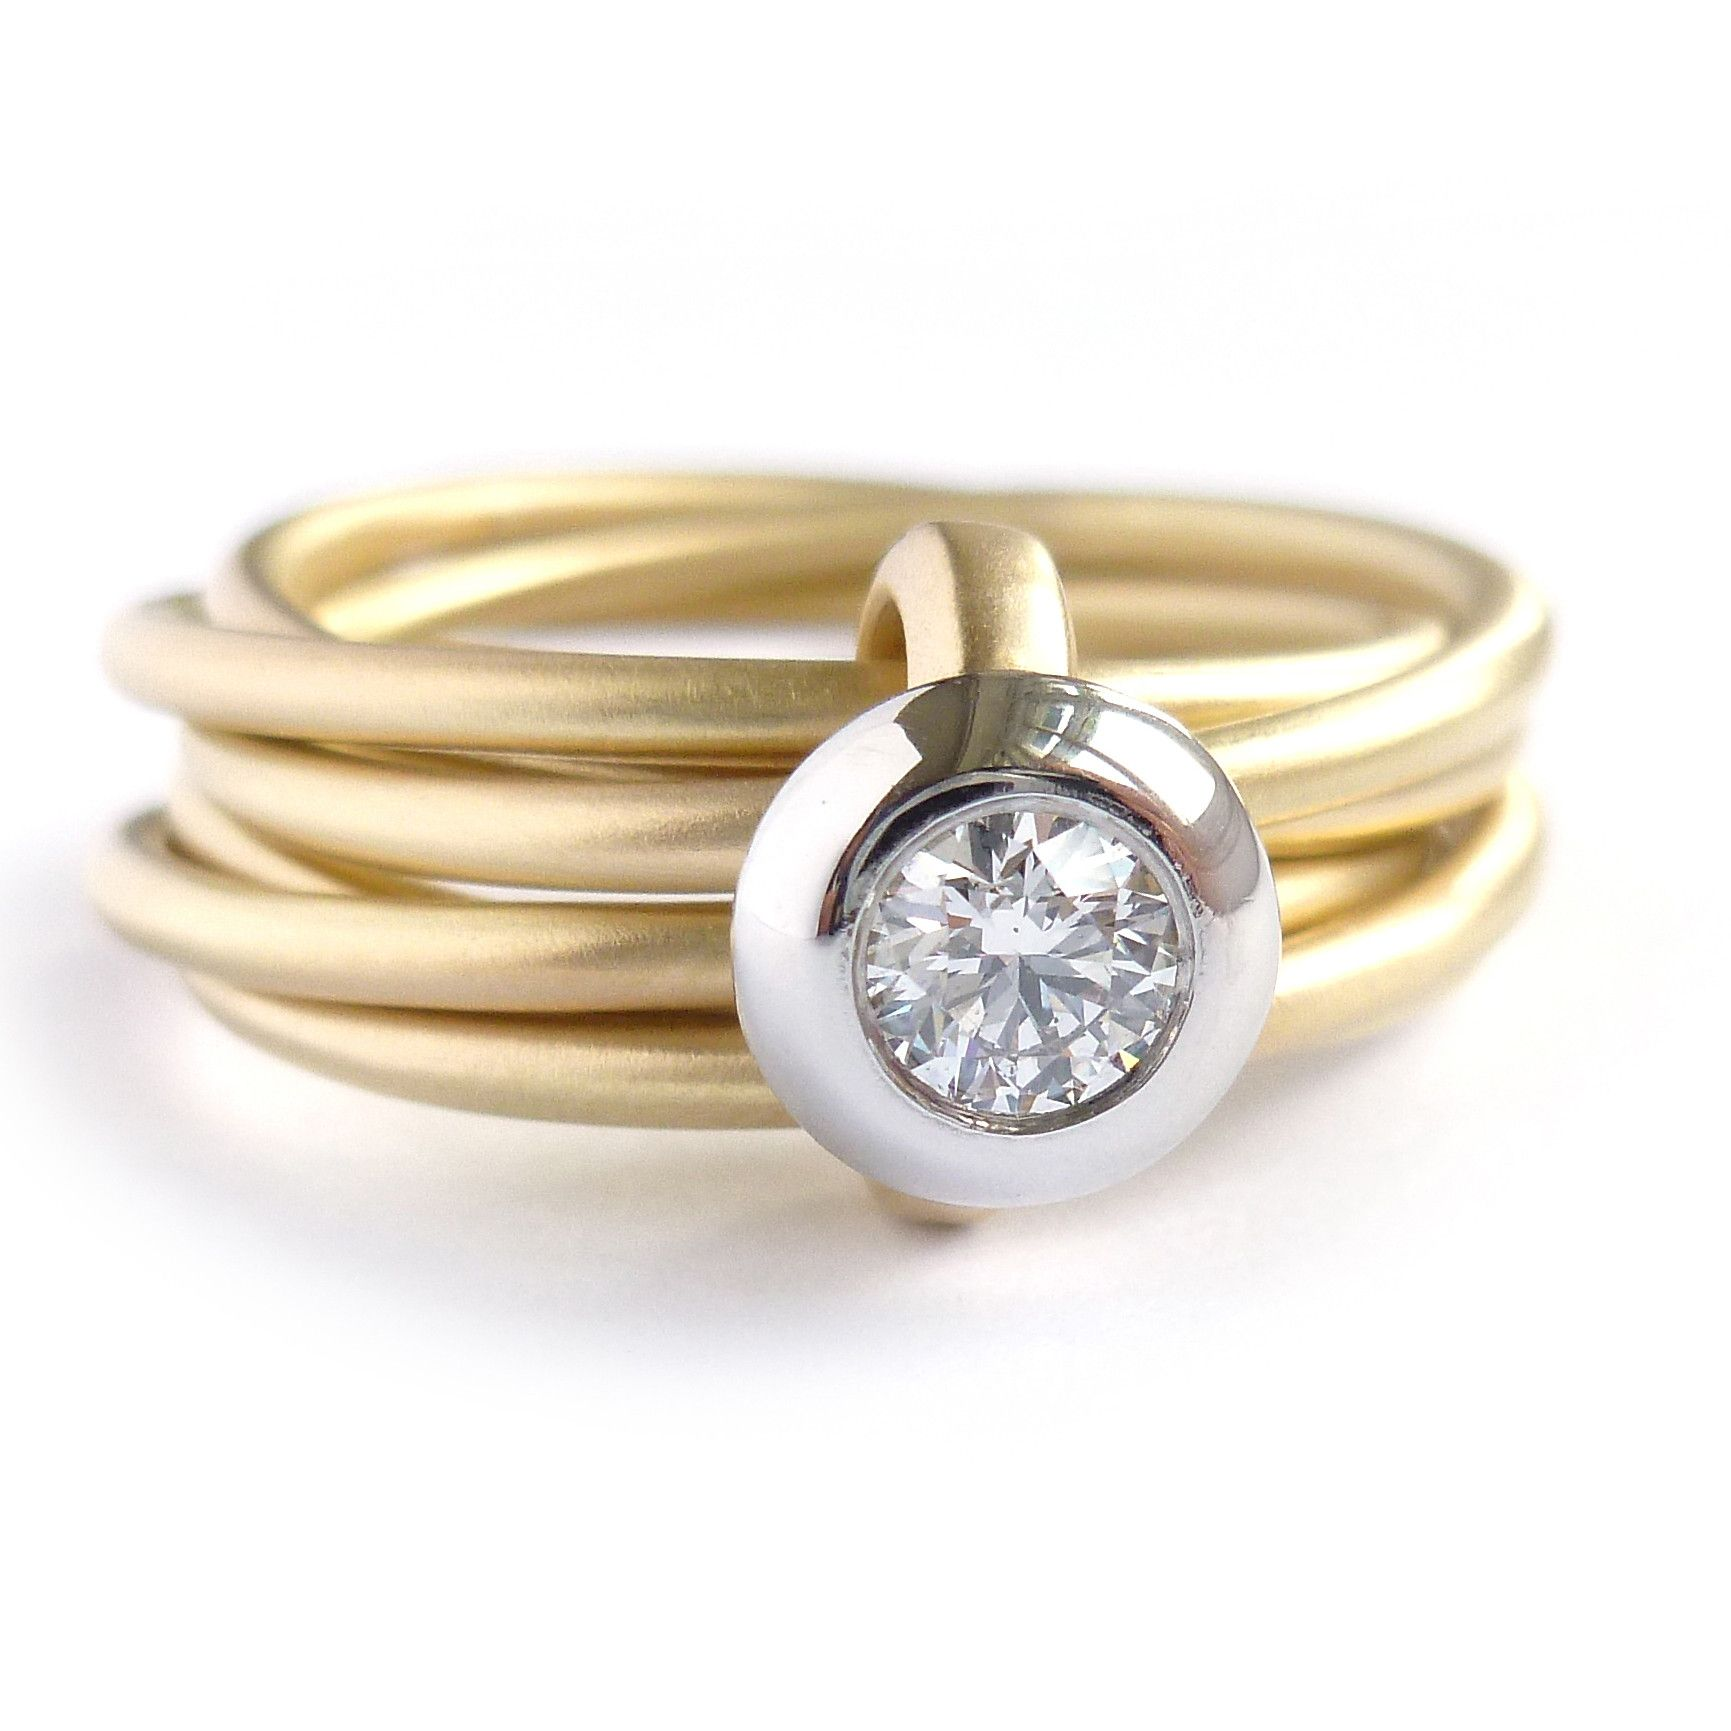 wedding jewellery cut mccaul fine diamond platinum and ring modern engagement rings goldsmiths white pear contemporary